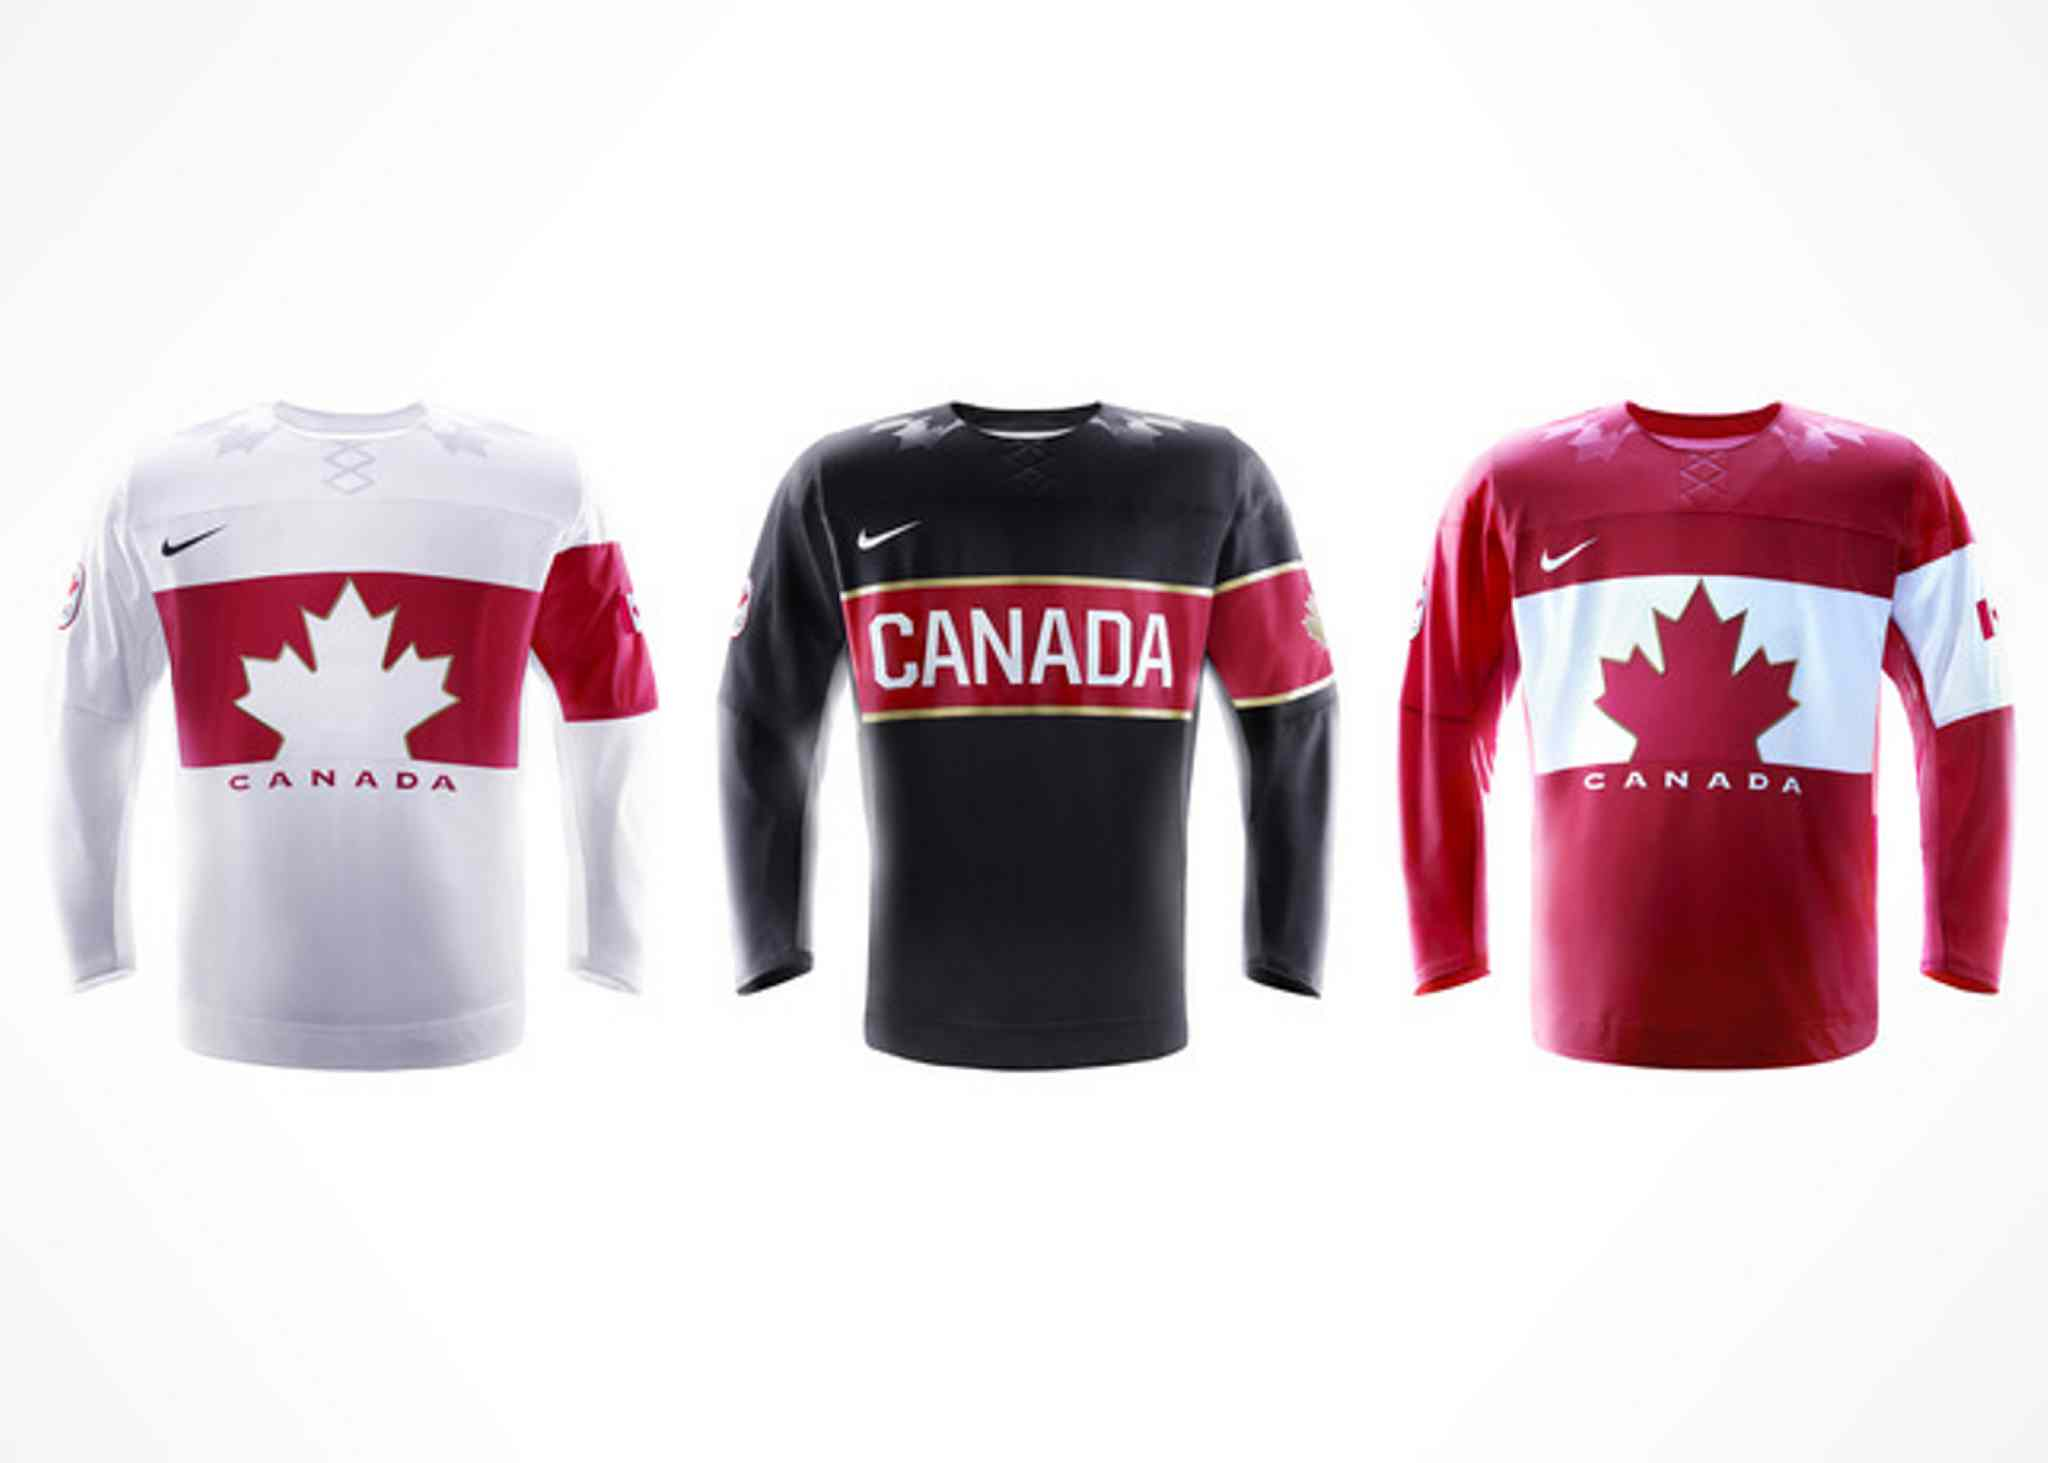 The jerseys unveiled Tuesday will be worn exclusively in competition by the men's, women's and sledge hockey teams representing Canada.